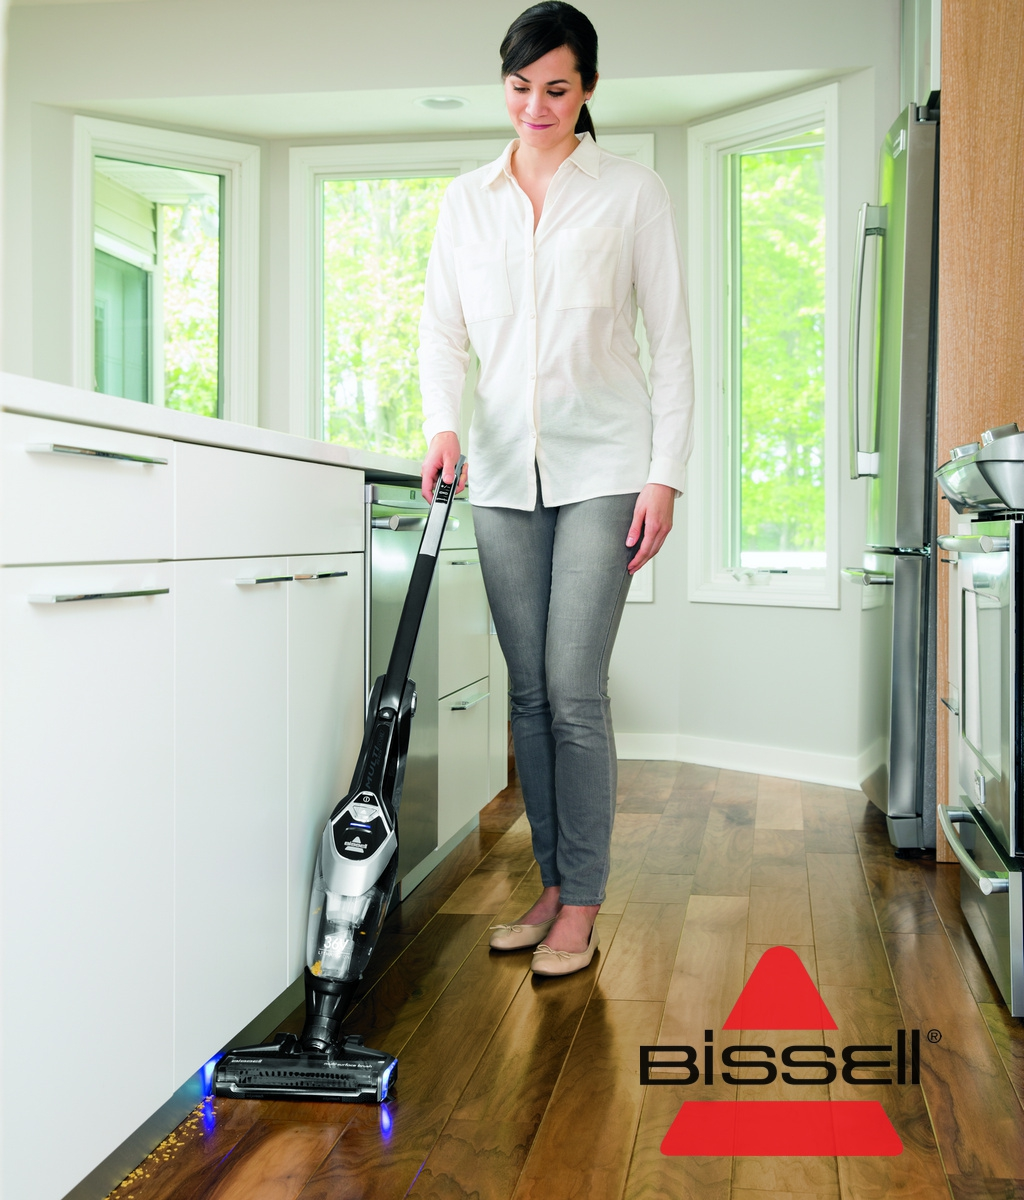 BISSELL MultiReach Ion XL 36V Feature EdgeREACH Technology